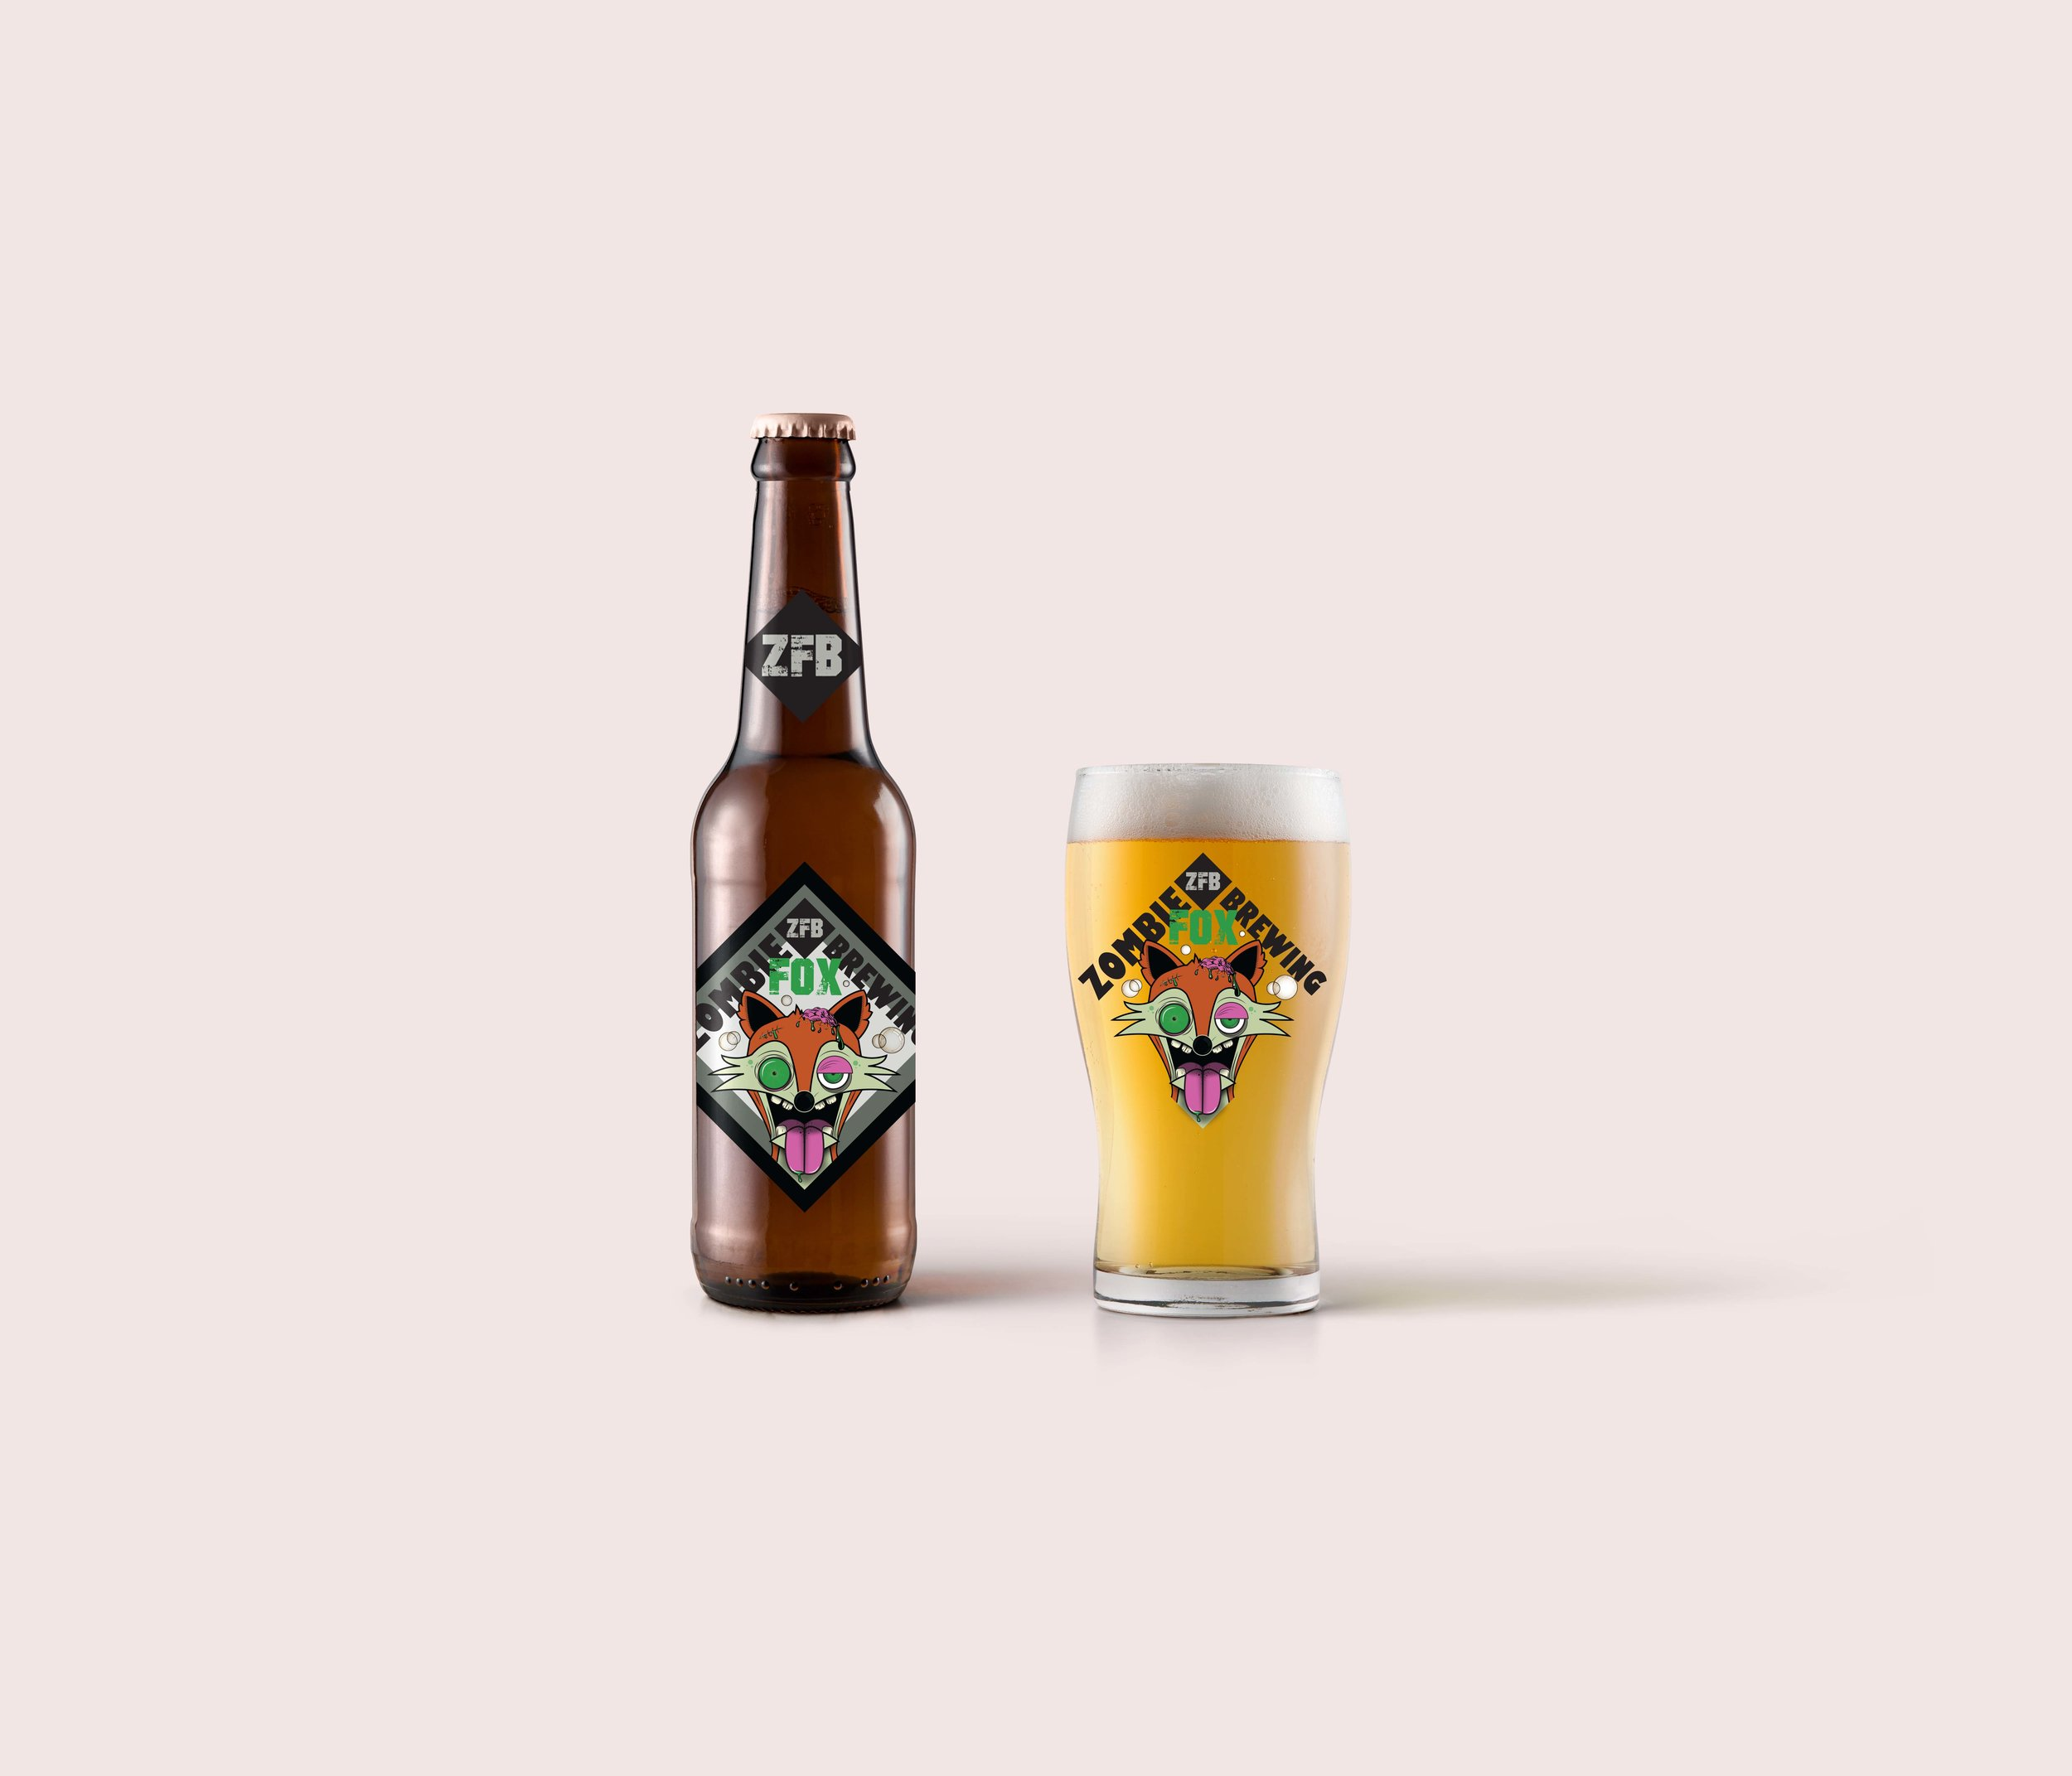 Blonde-Beer-Amber-Bottle-Mockup.jpg